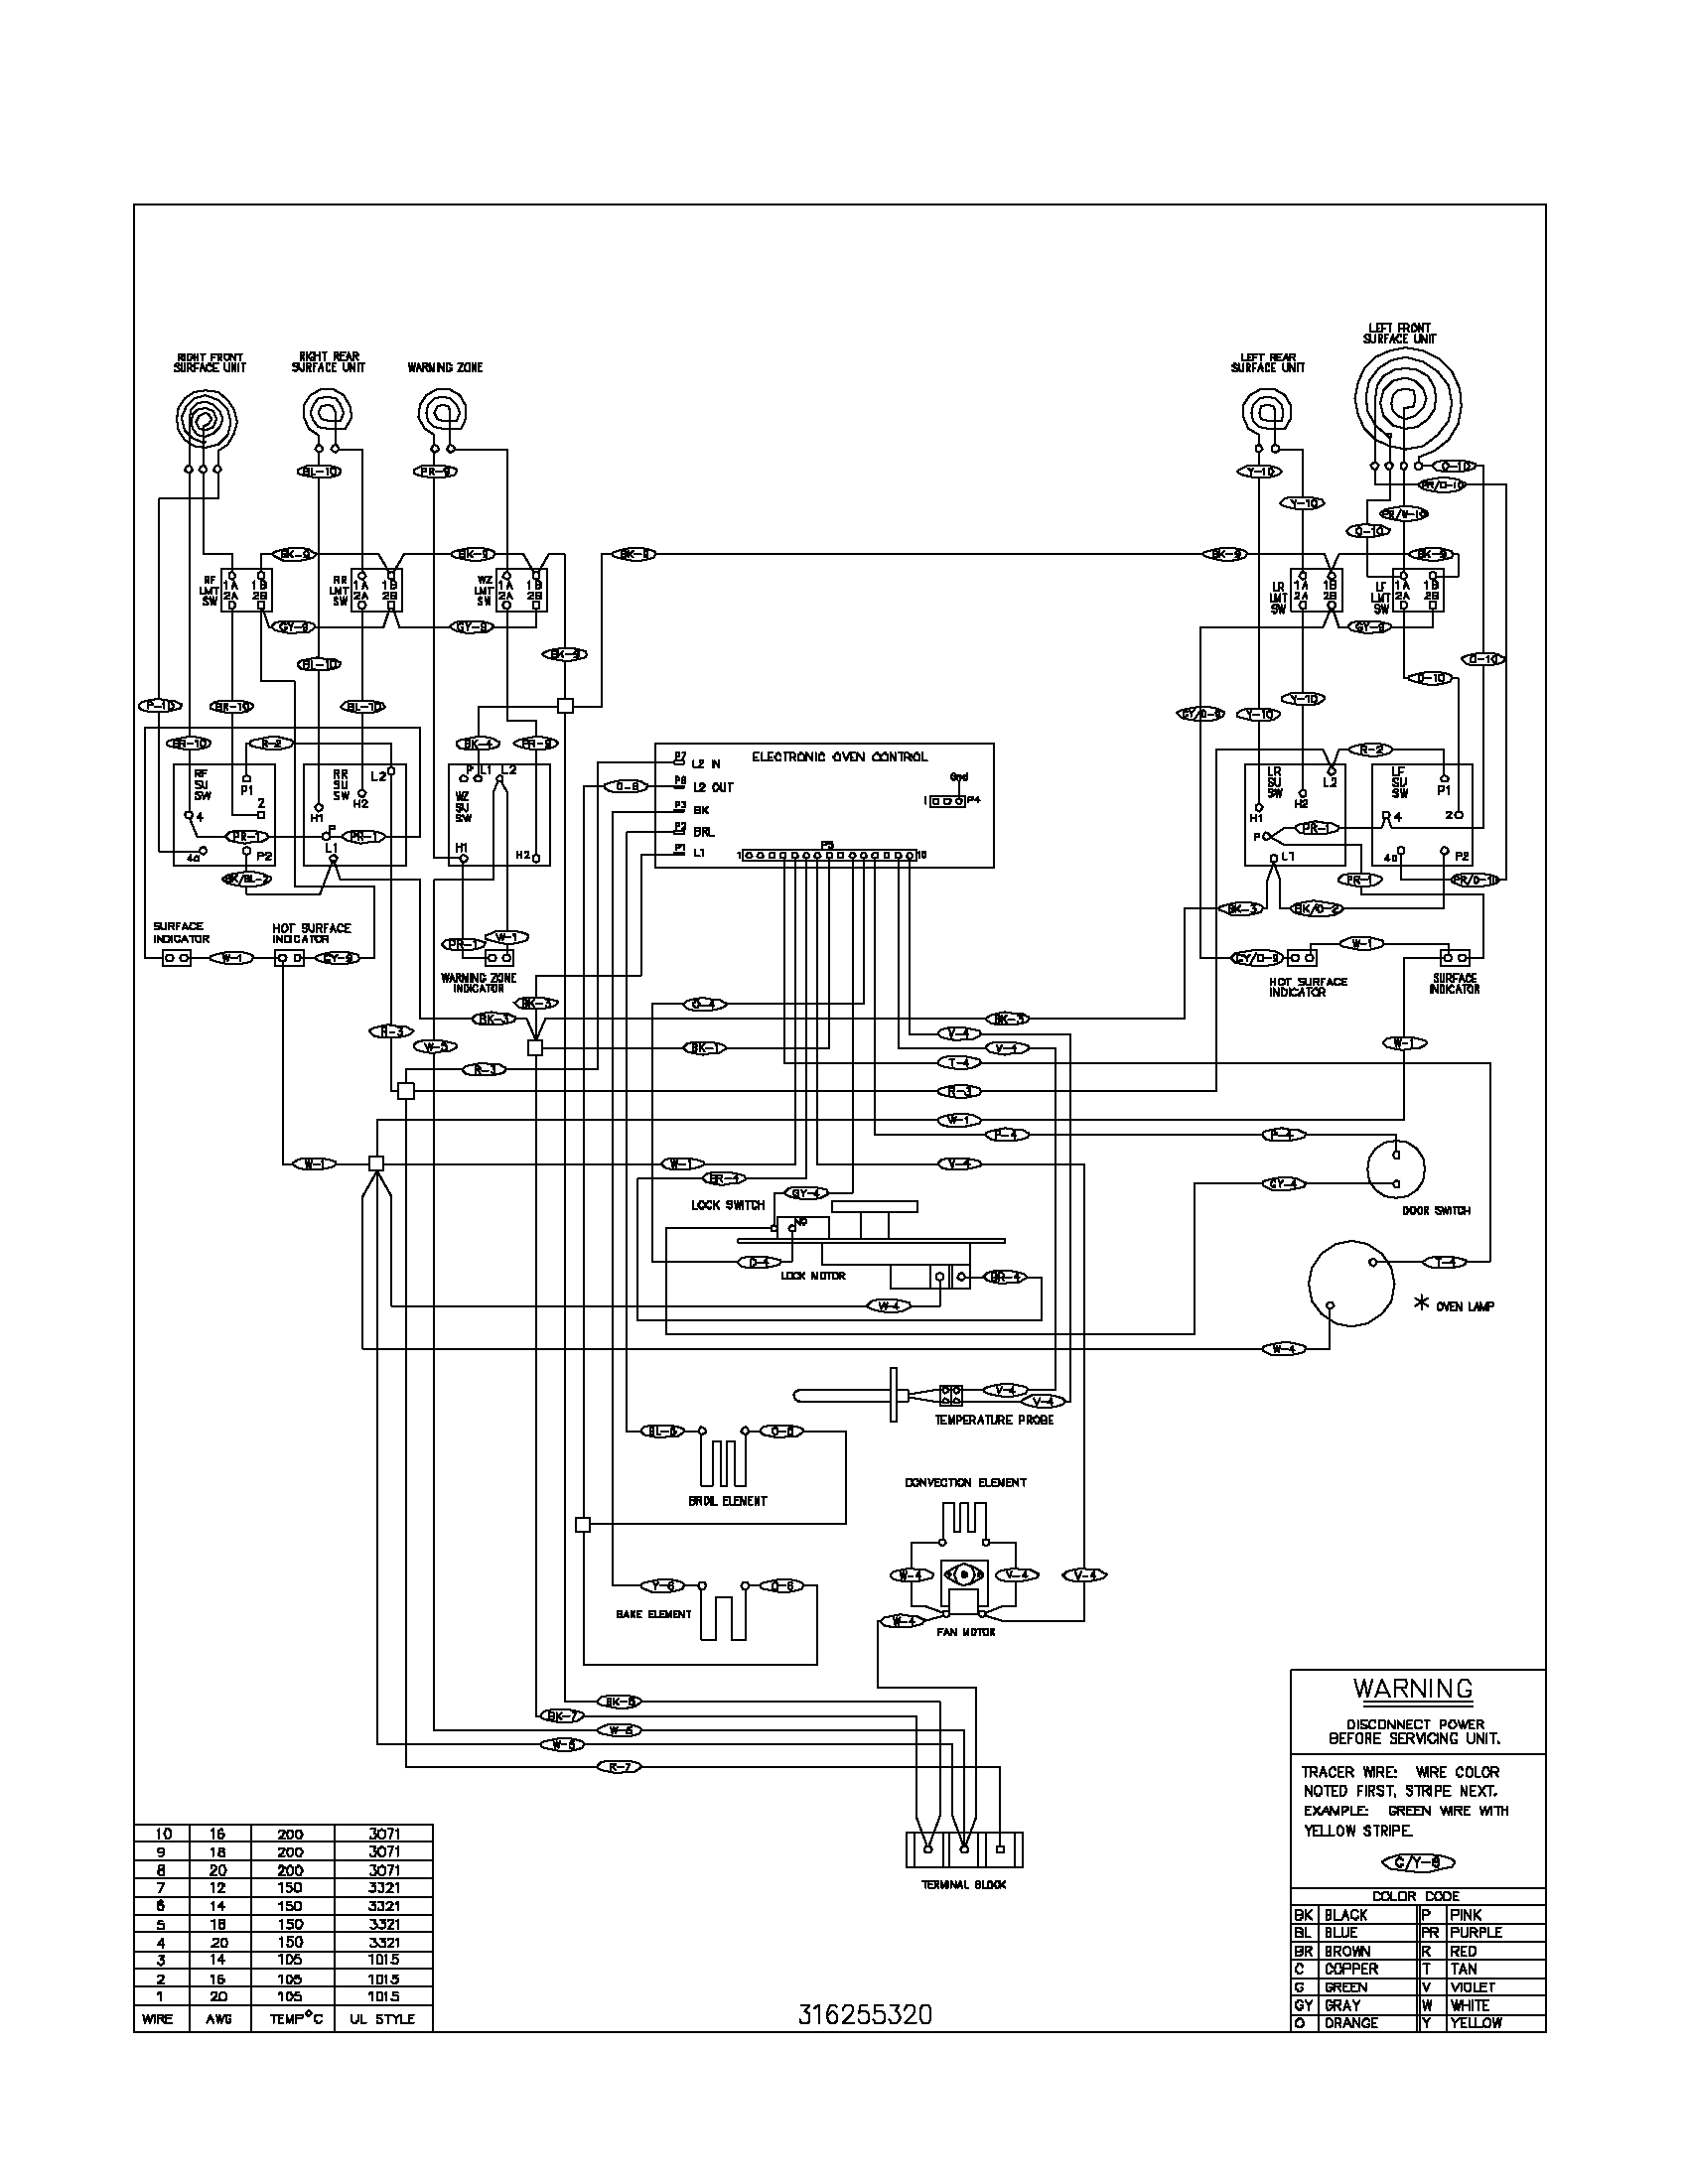 electrical schematic diagram for ge fridge